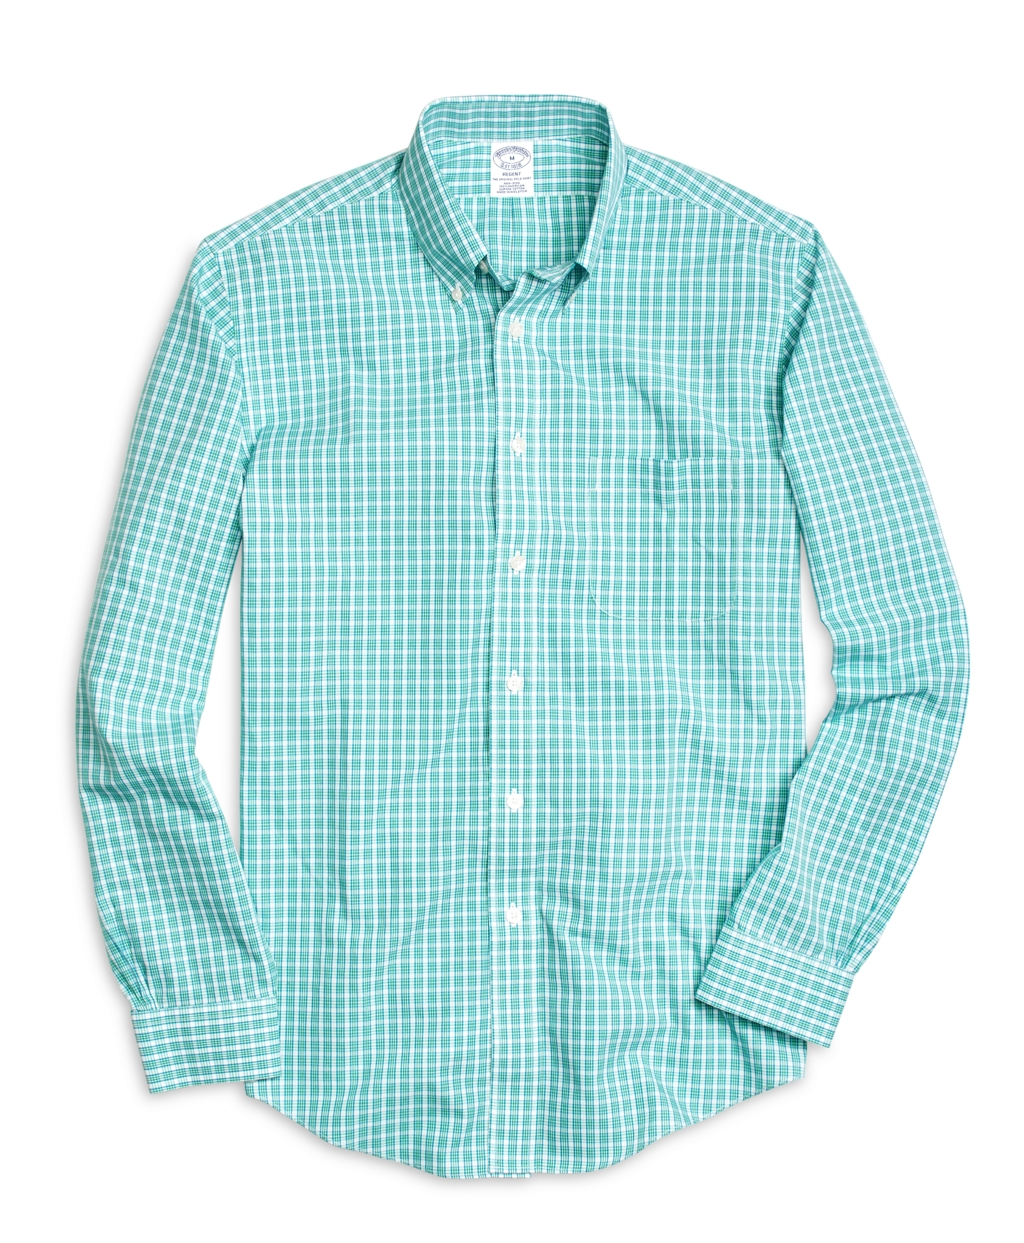 Brooks brothers non iron brookscool madison fit small Brooks brothers shirt size guide